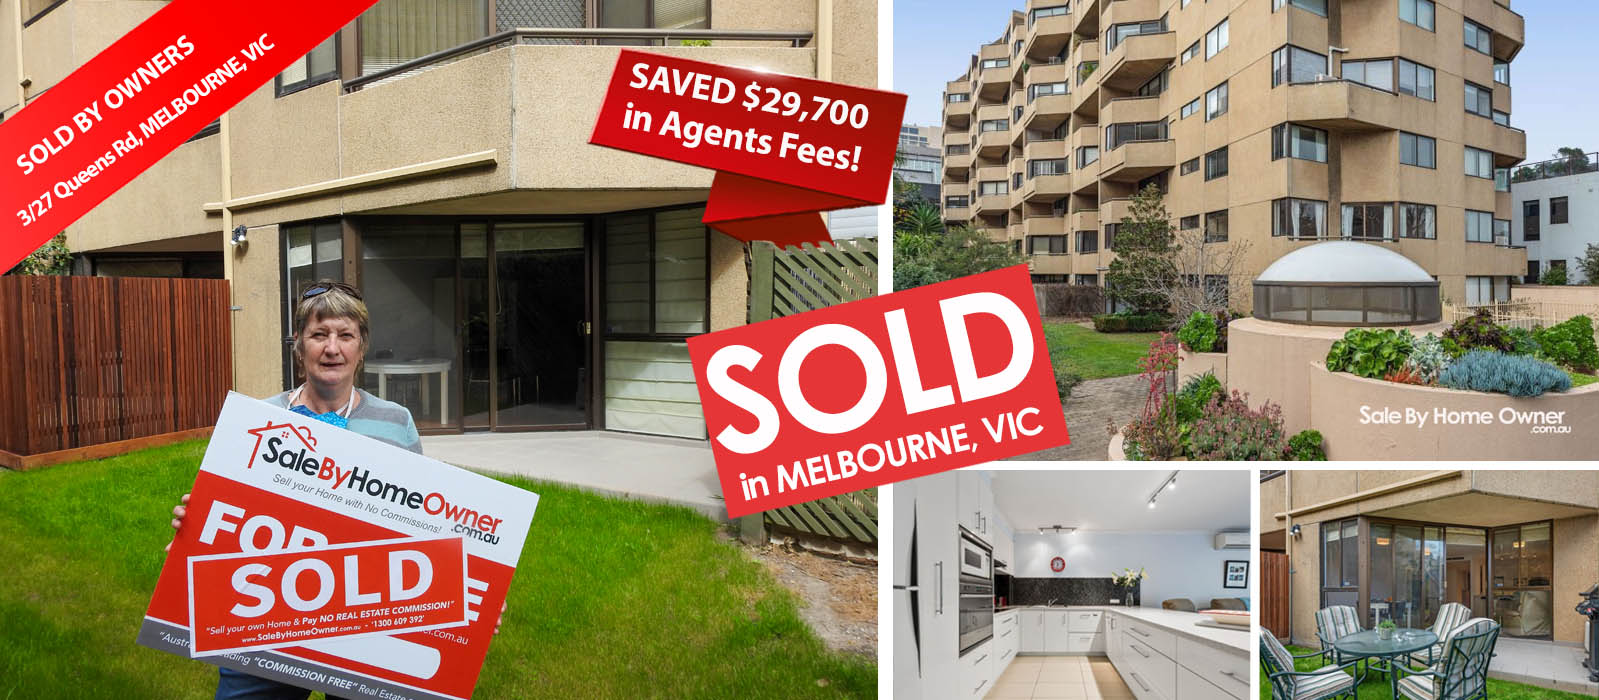 Private house sales in Melbourne VIC